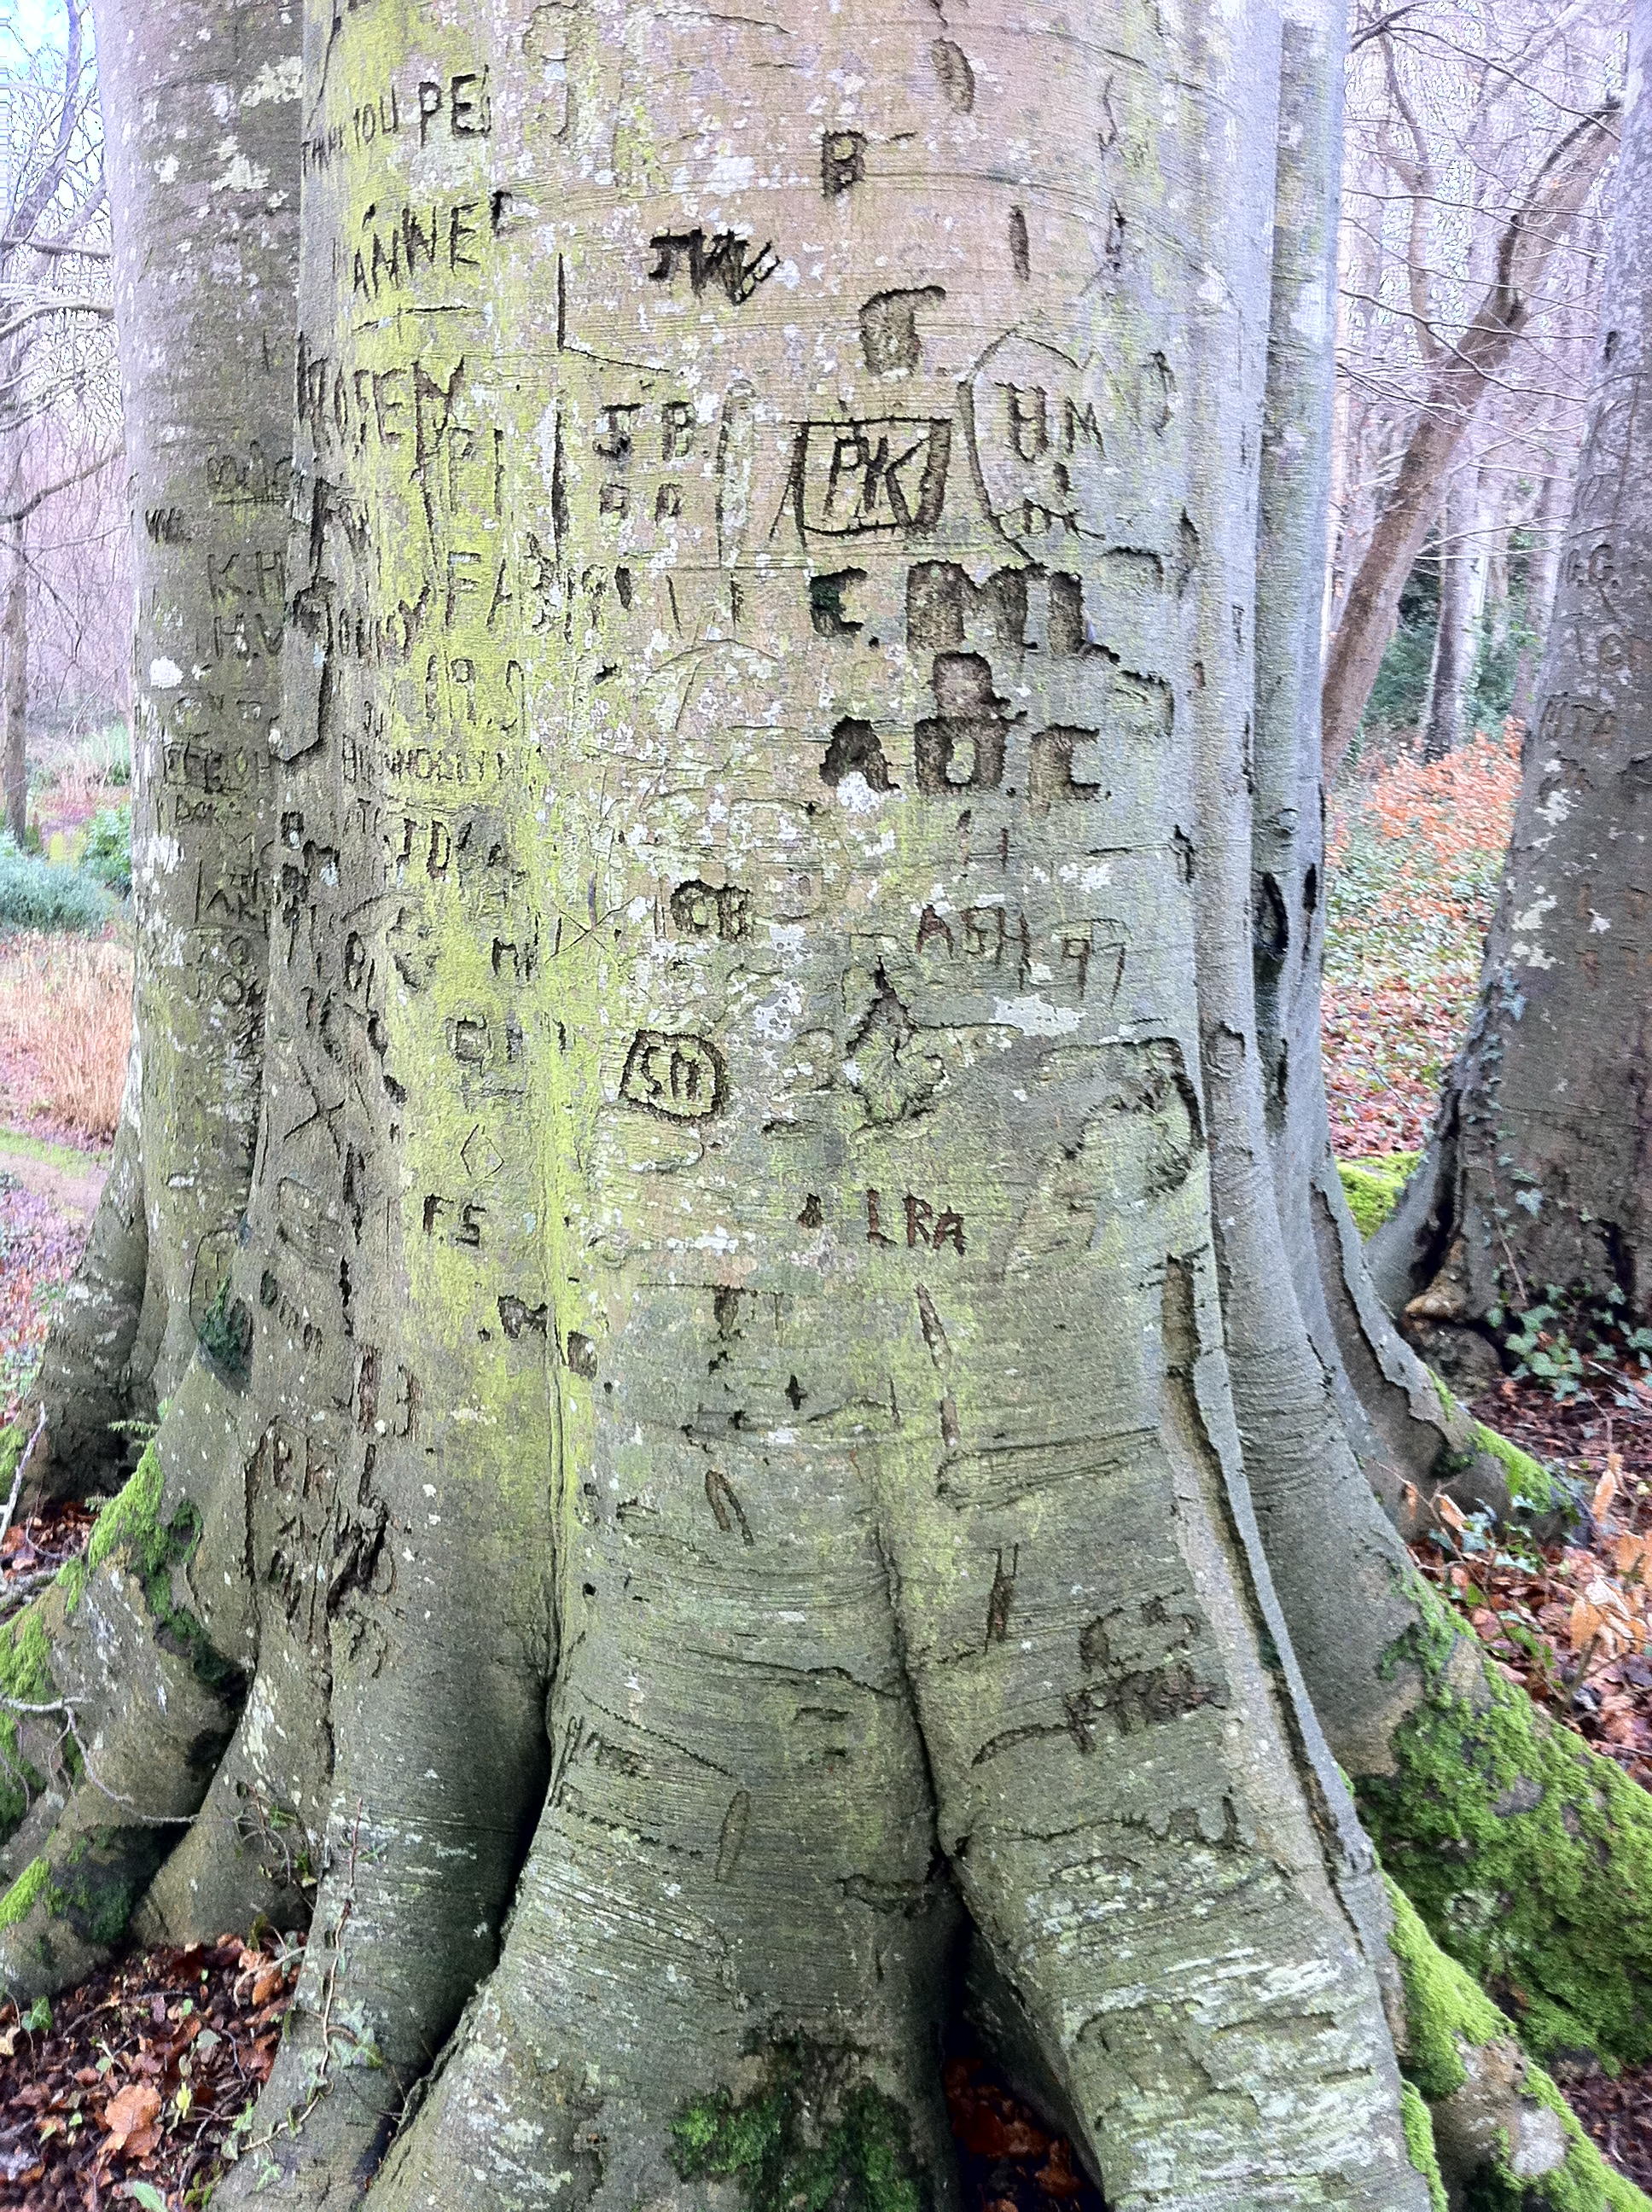 carve our names in a tree perhaps in our backyard one day